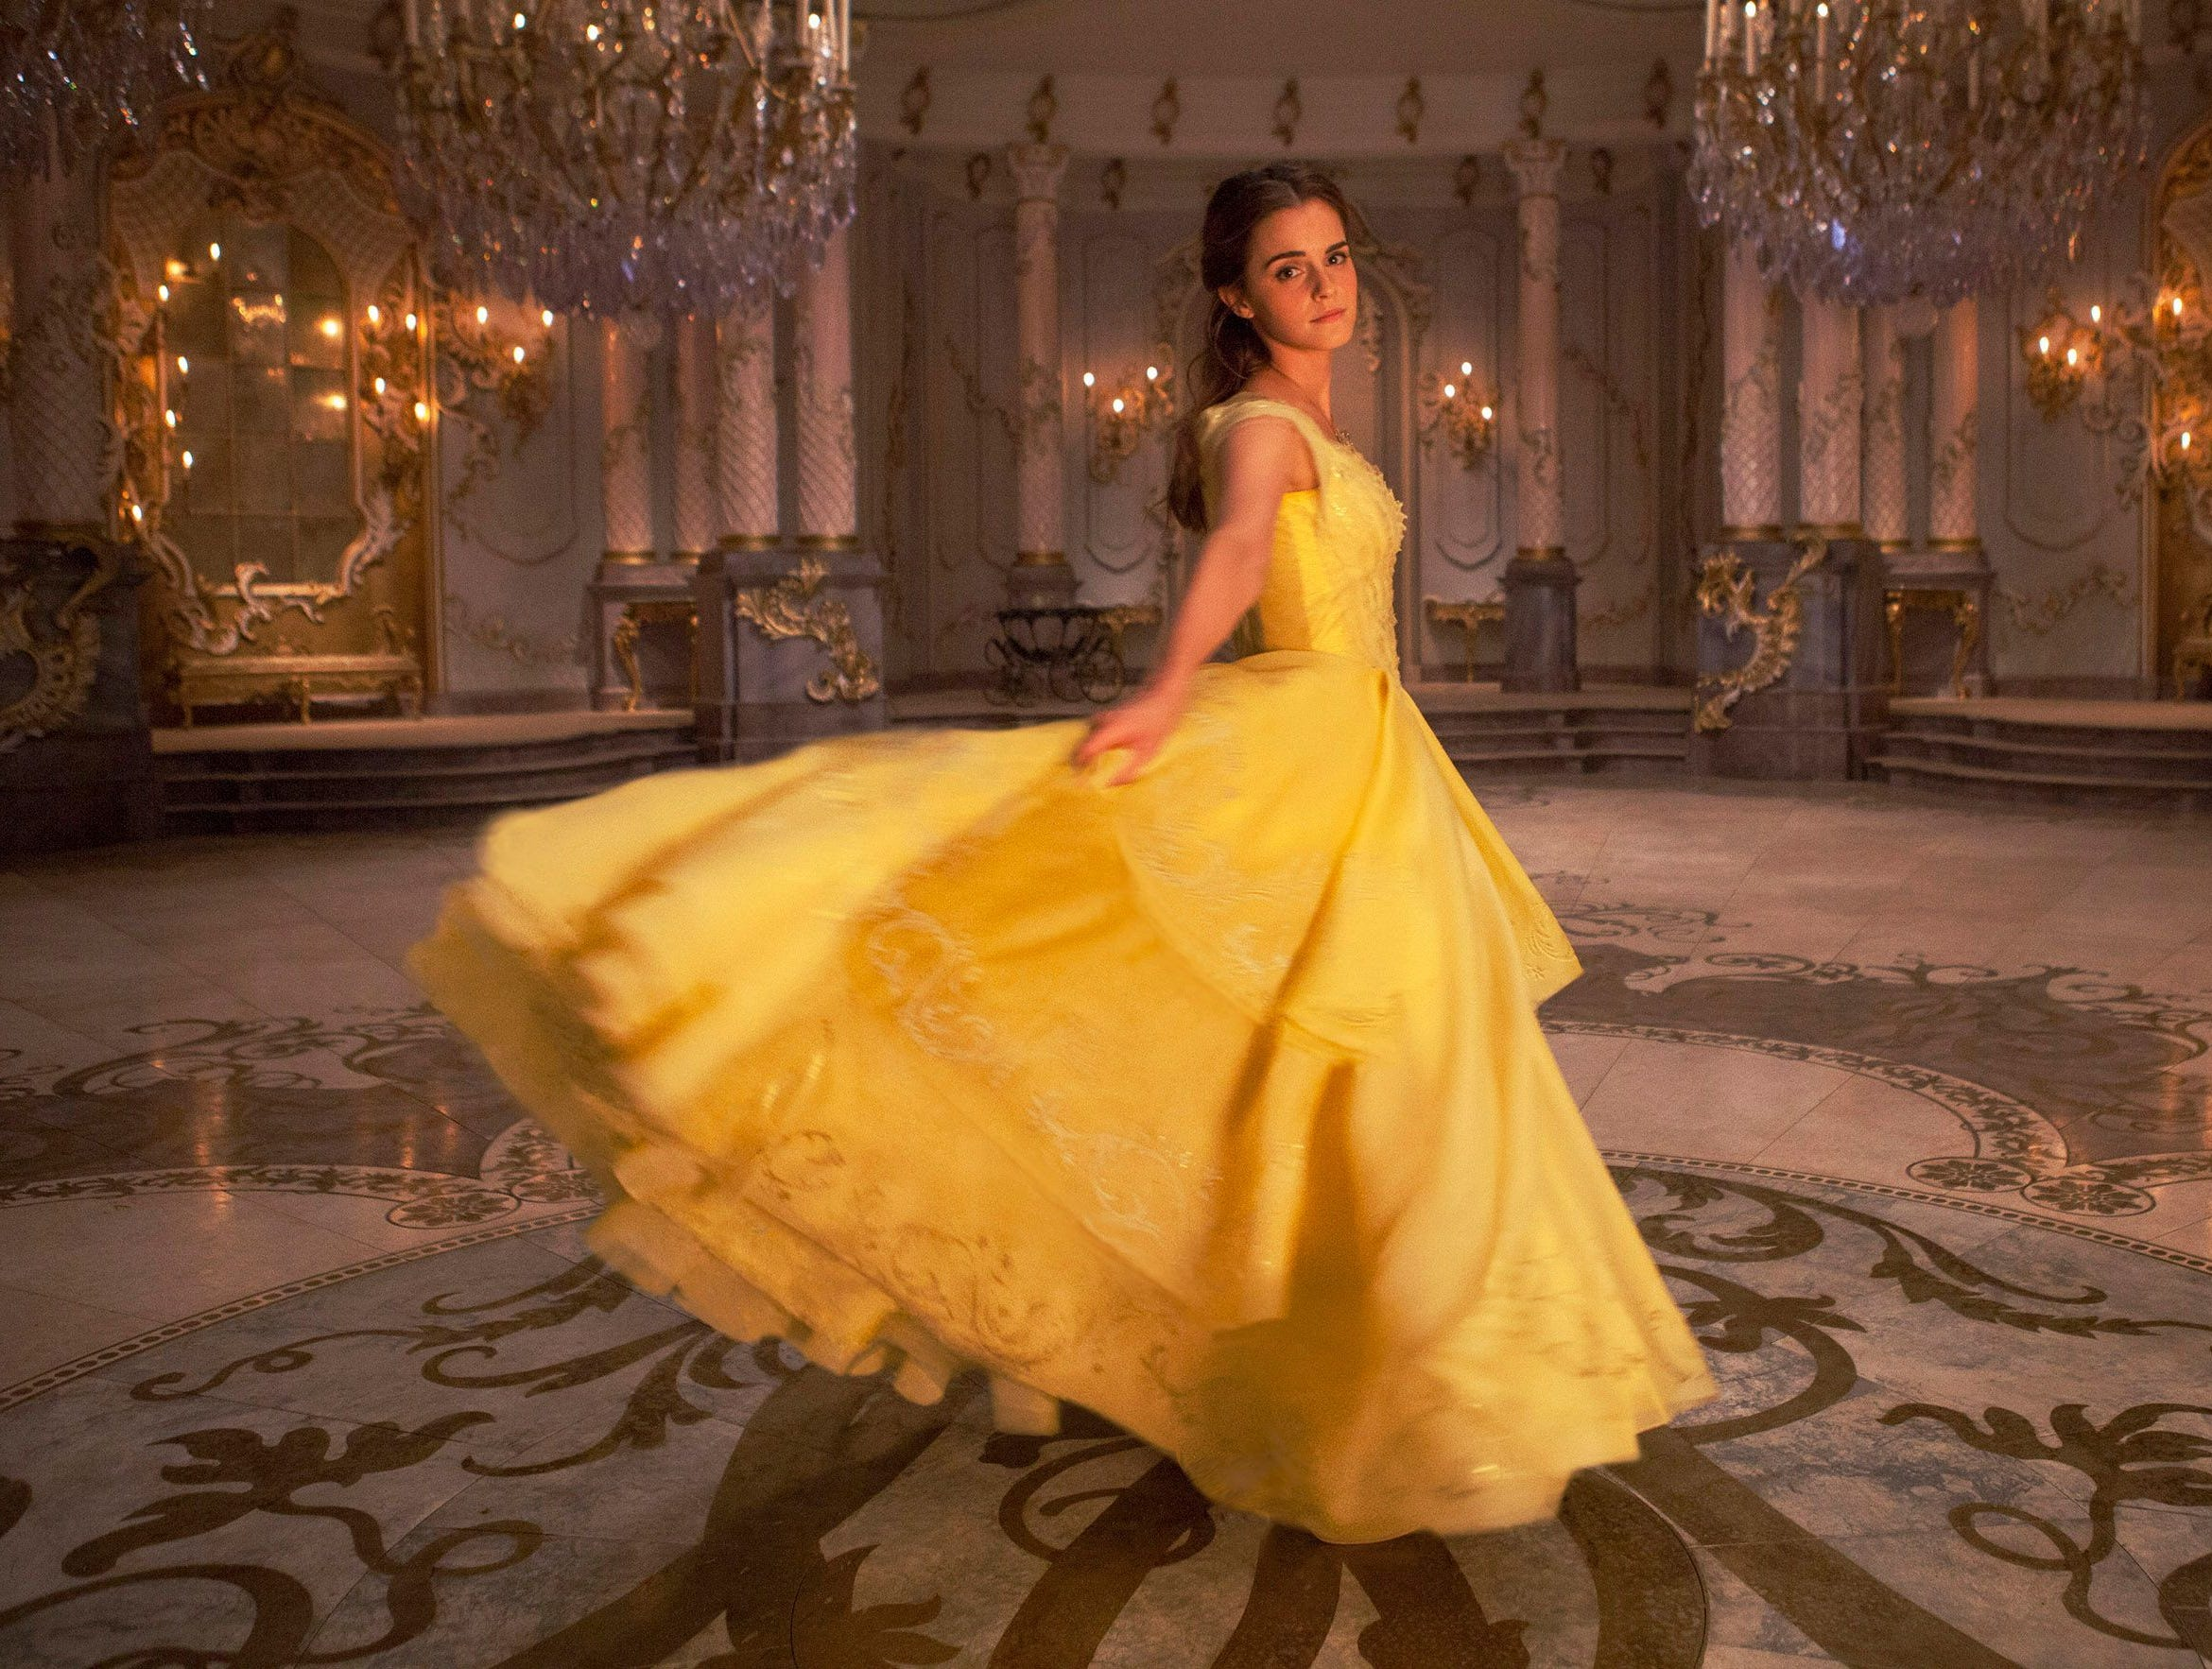 """In 2017, Watson took a turn around the ballroom as Belle in Disney's live version of """"Beauty and the Beast."""""""